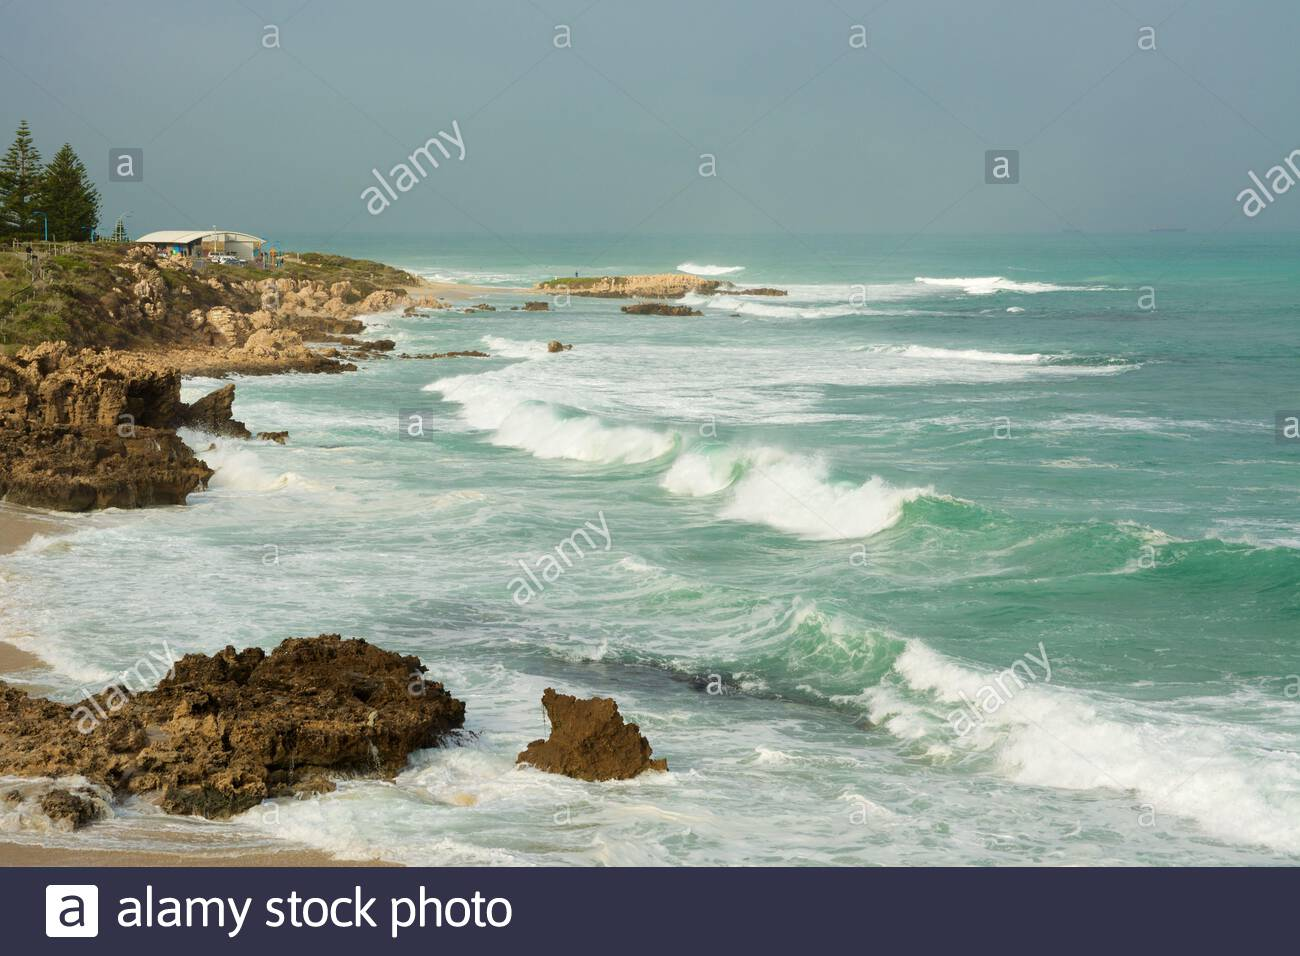 a-view-from-bennion-beach-looking-towards-trigg-point-in-perth-western-australia-the-seas-were-still-rough-following-some-stormy-weather-2BY6GJB.jpg